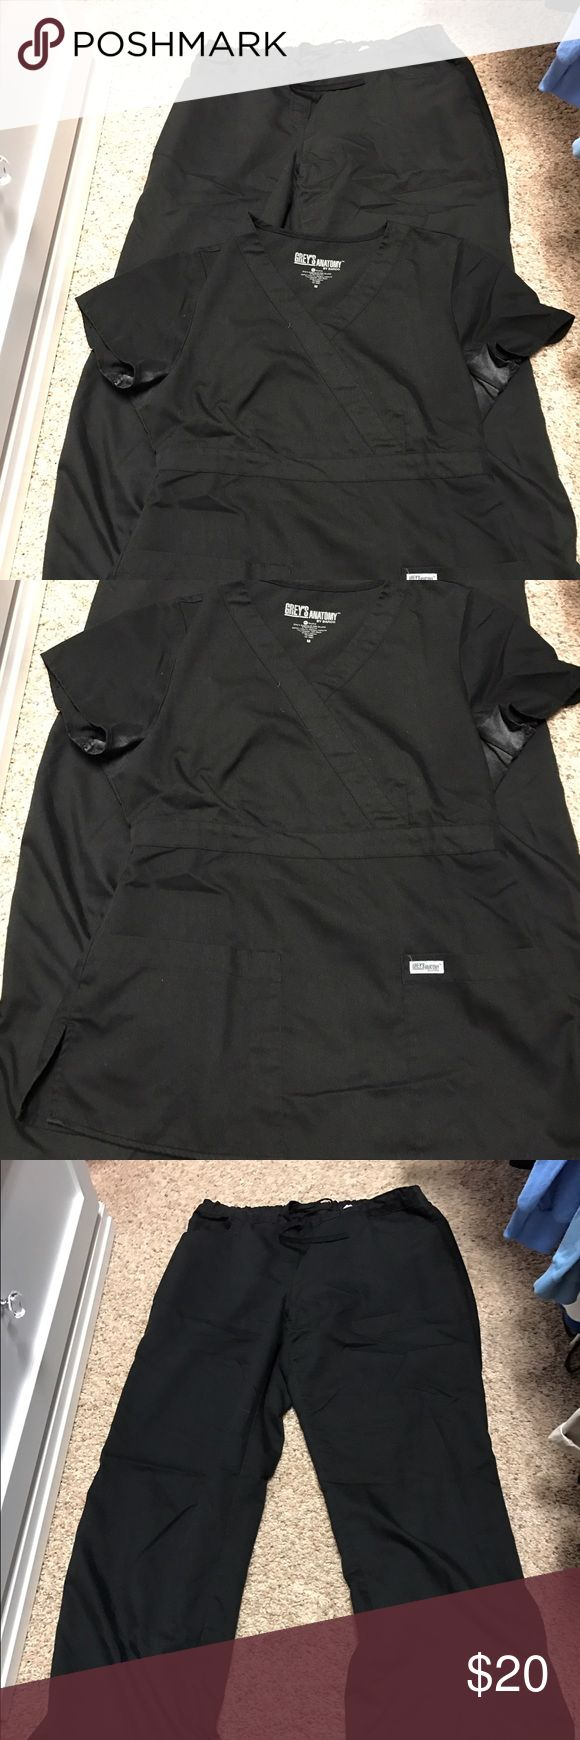 Grey's Anatomy scrub set M top, Large Tall pants Grey's Anatomy scrub set Medium top, Large Tall pants in black. Discoloration under the arms, could likely be removed with treatment. Good condition otherwise! grey's anatomy Other